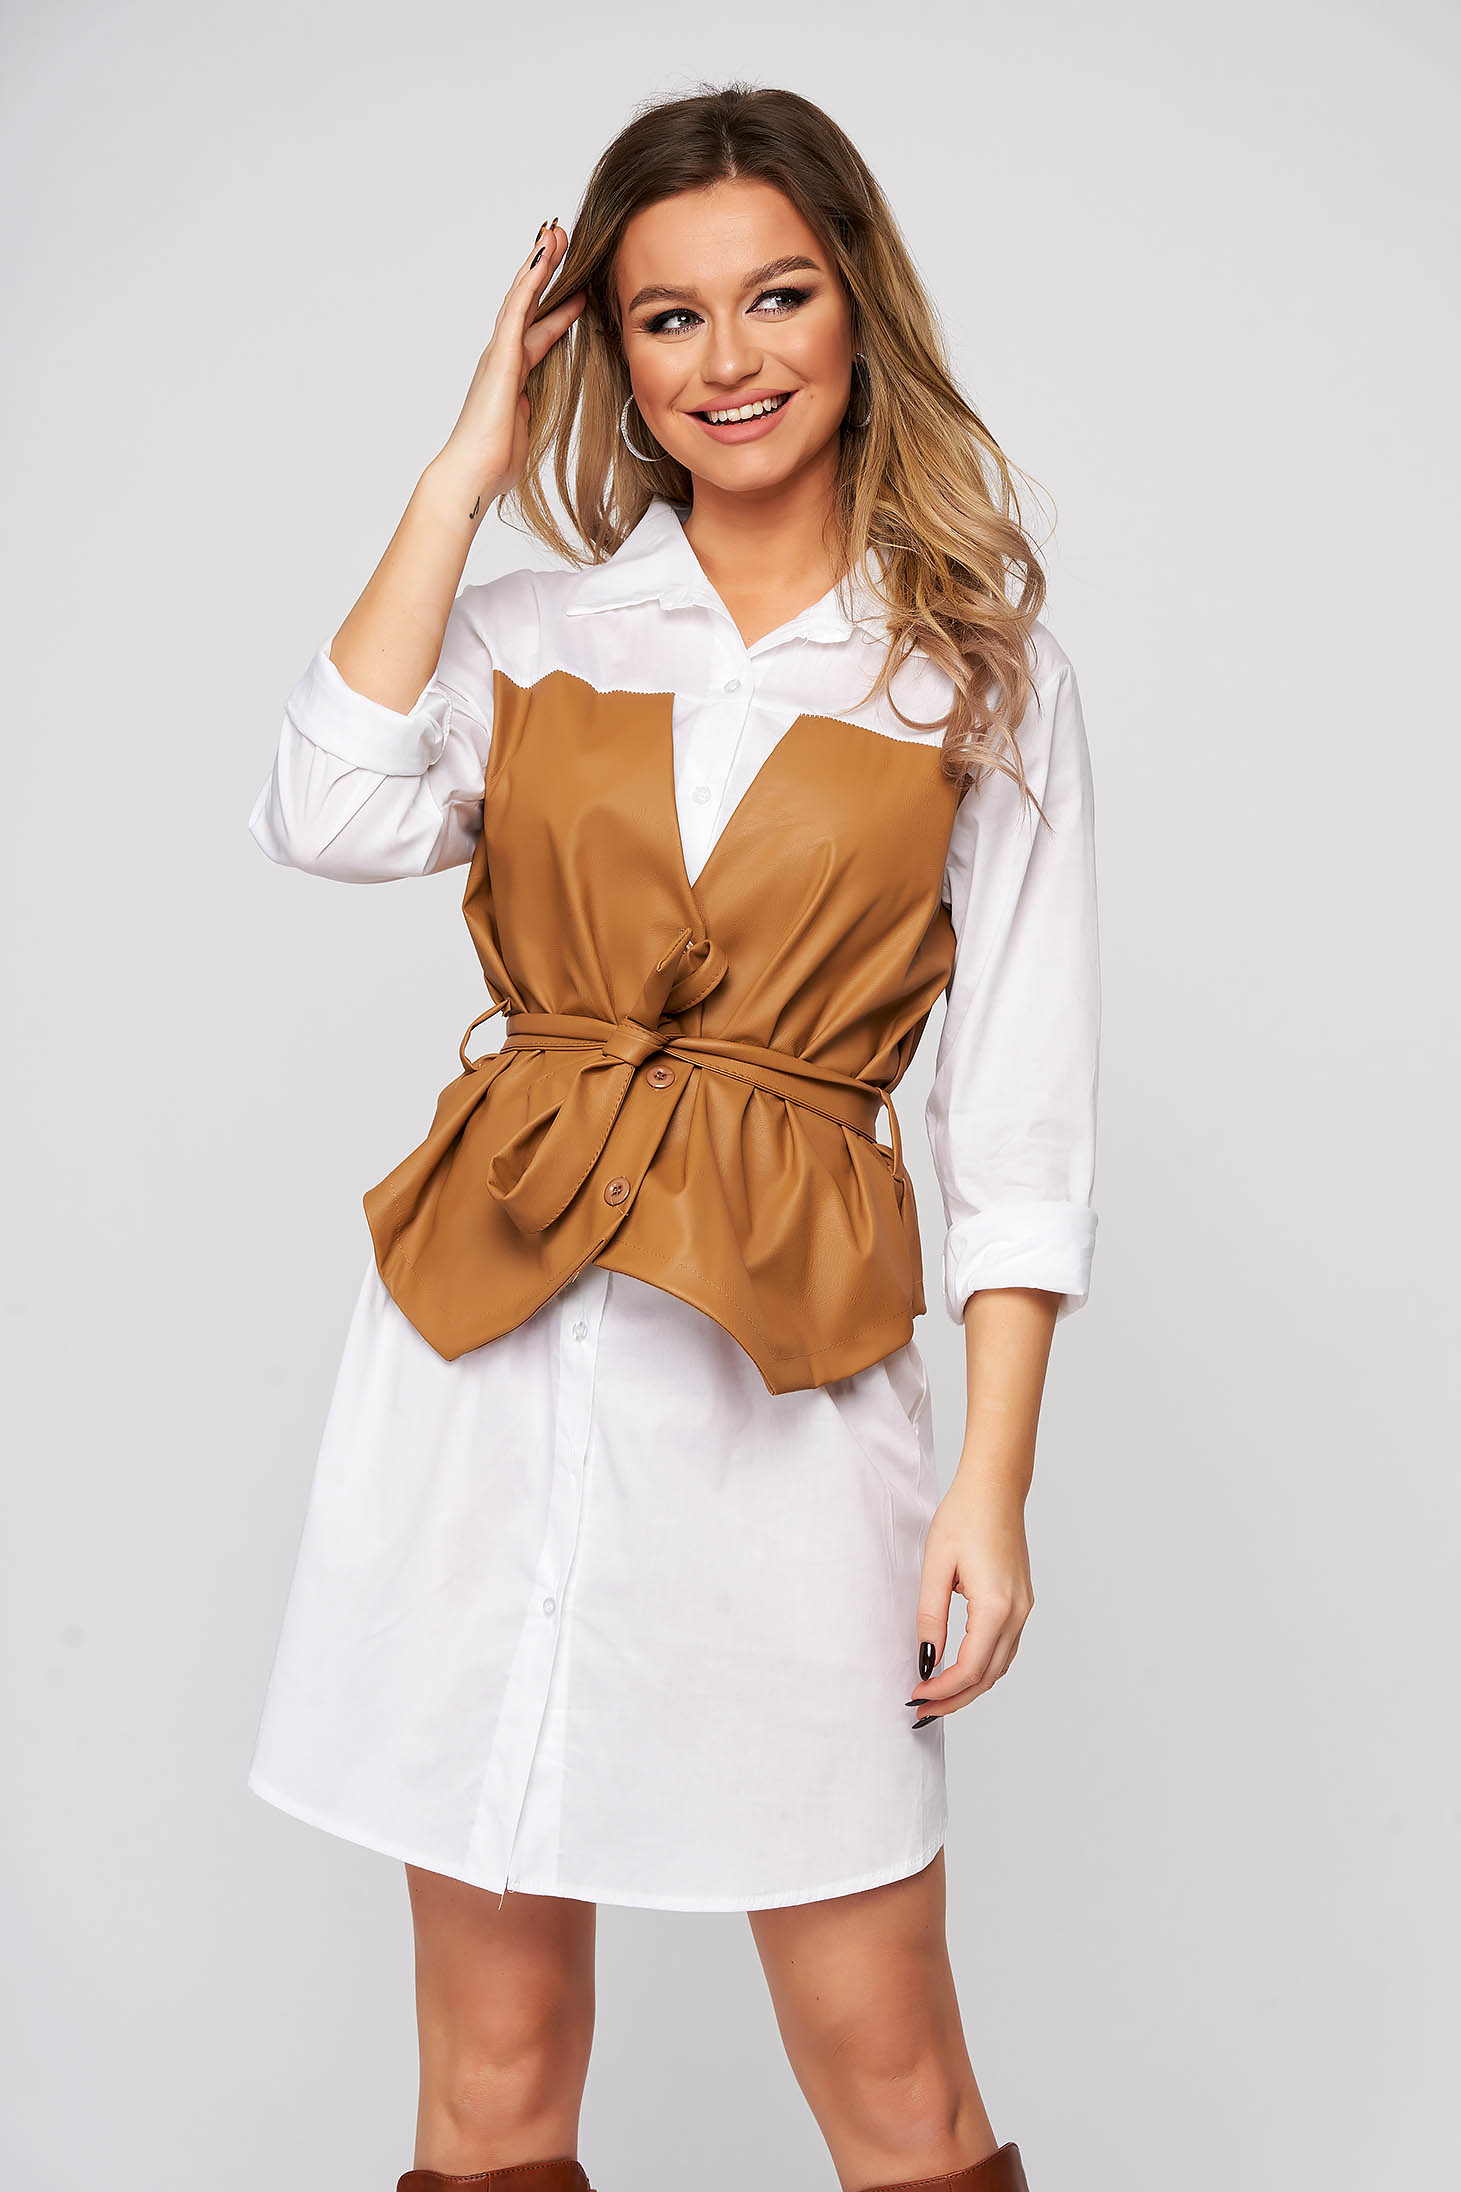 White dress shirt dress accessorized with tied waistband with faux leather details